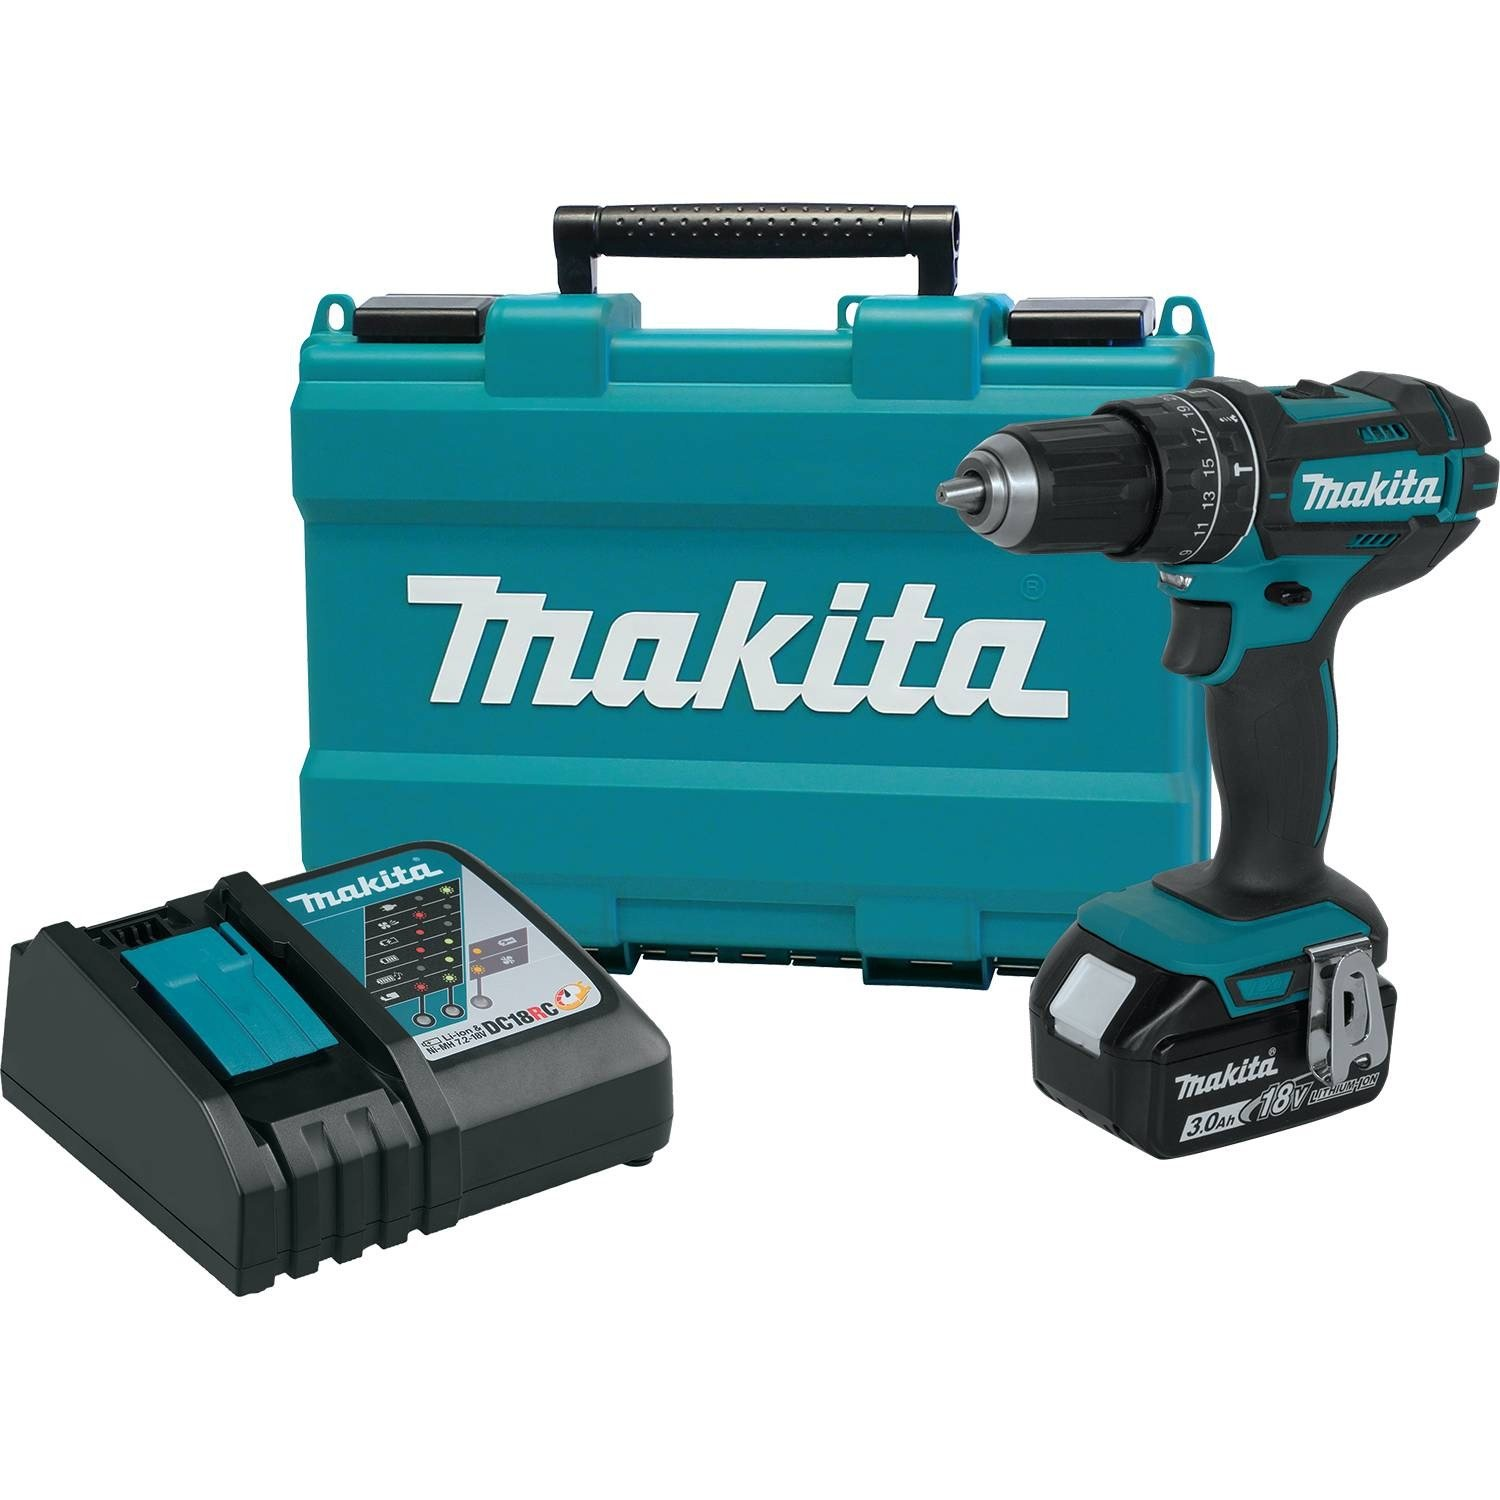 makita xph102 18v lxt lithium ion cordless 1 2 hammer. Black Bedroom Furniture Sets. Home Design Ideas